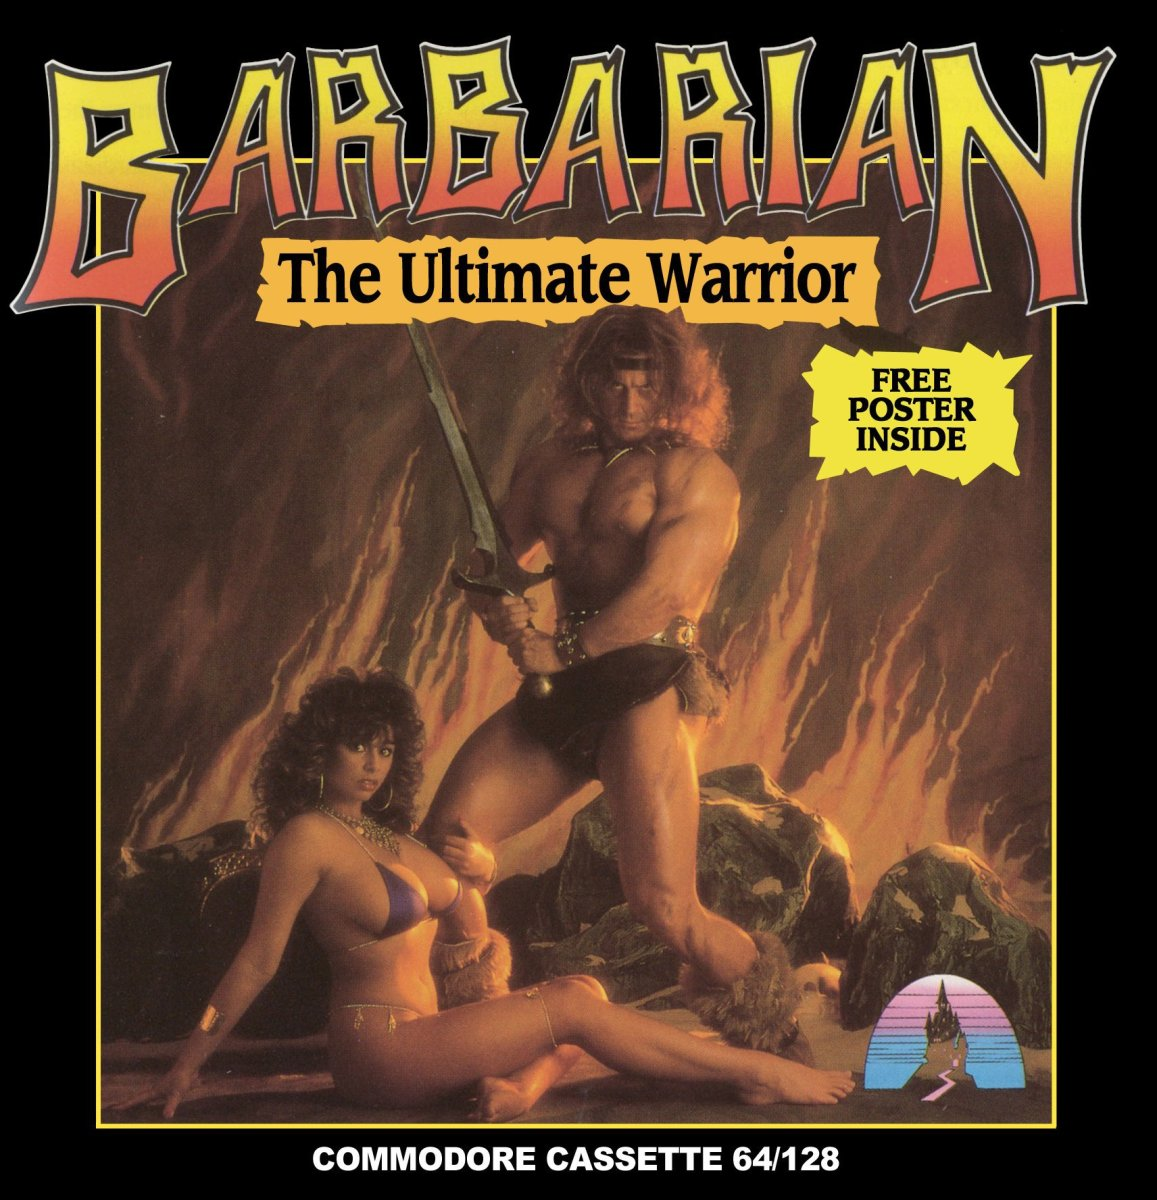 Barbarian: The Ultimate Warrior. Palace Software (1987) Commodore 64